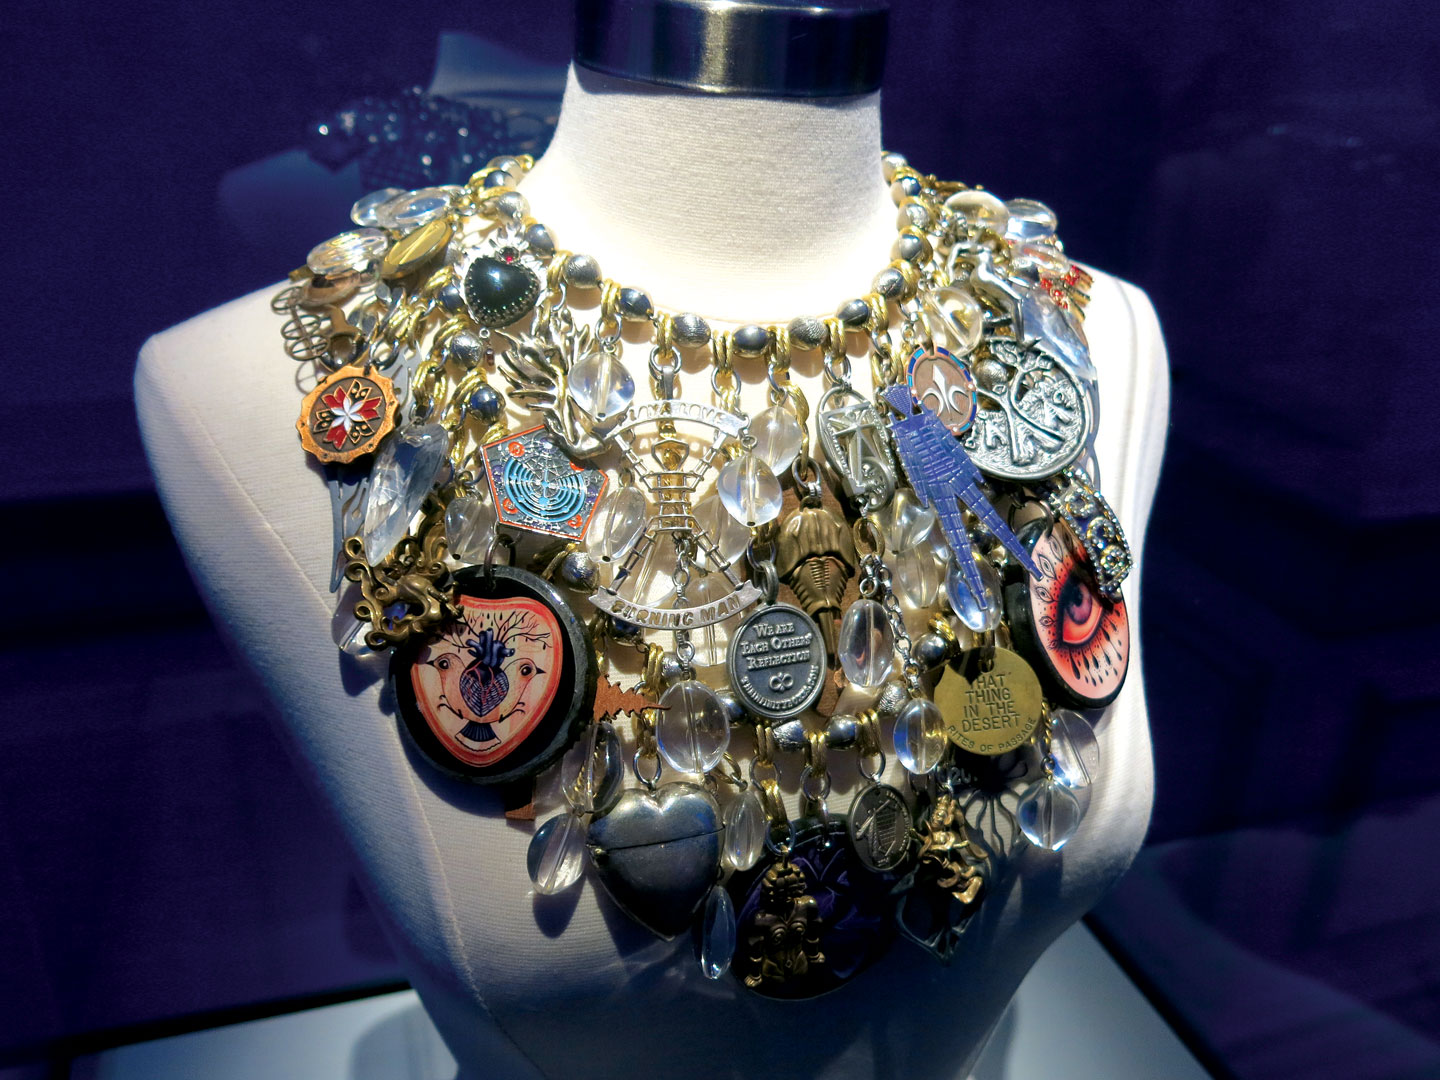 THE PLAYA PROVIDES NECKPIECE from various artists, assembled by Jennifer George, of metal, plastic, crystal, abalone, wood, and sterling silver, 2006-2017. The gifting economy that underpins the entire foundation of Burning Man, both literally and figuratively, leads to a continual and constant exchange of medals, pendants, badges, brooches, and other memorabilia as signs of affection, friendship, community, and shared memories.  Photograph by Patrick R. Benesh-Liu.